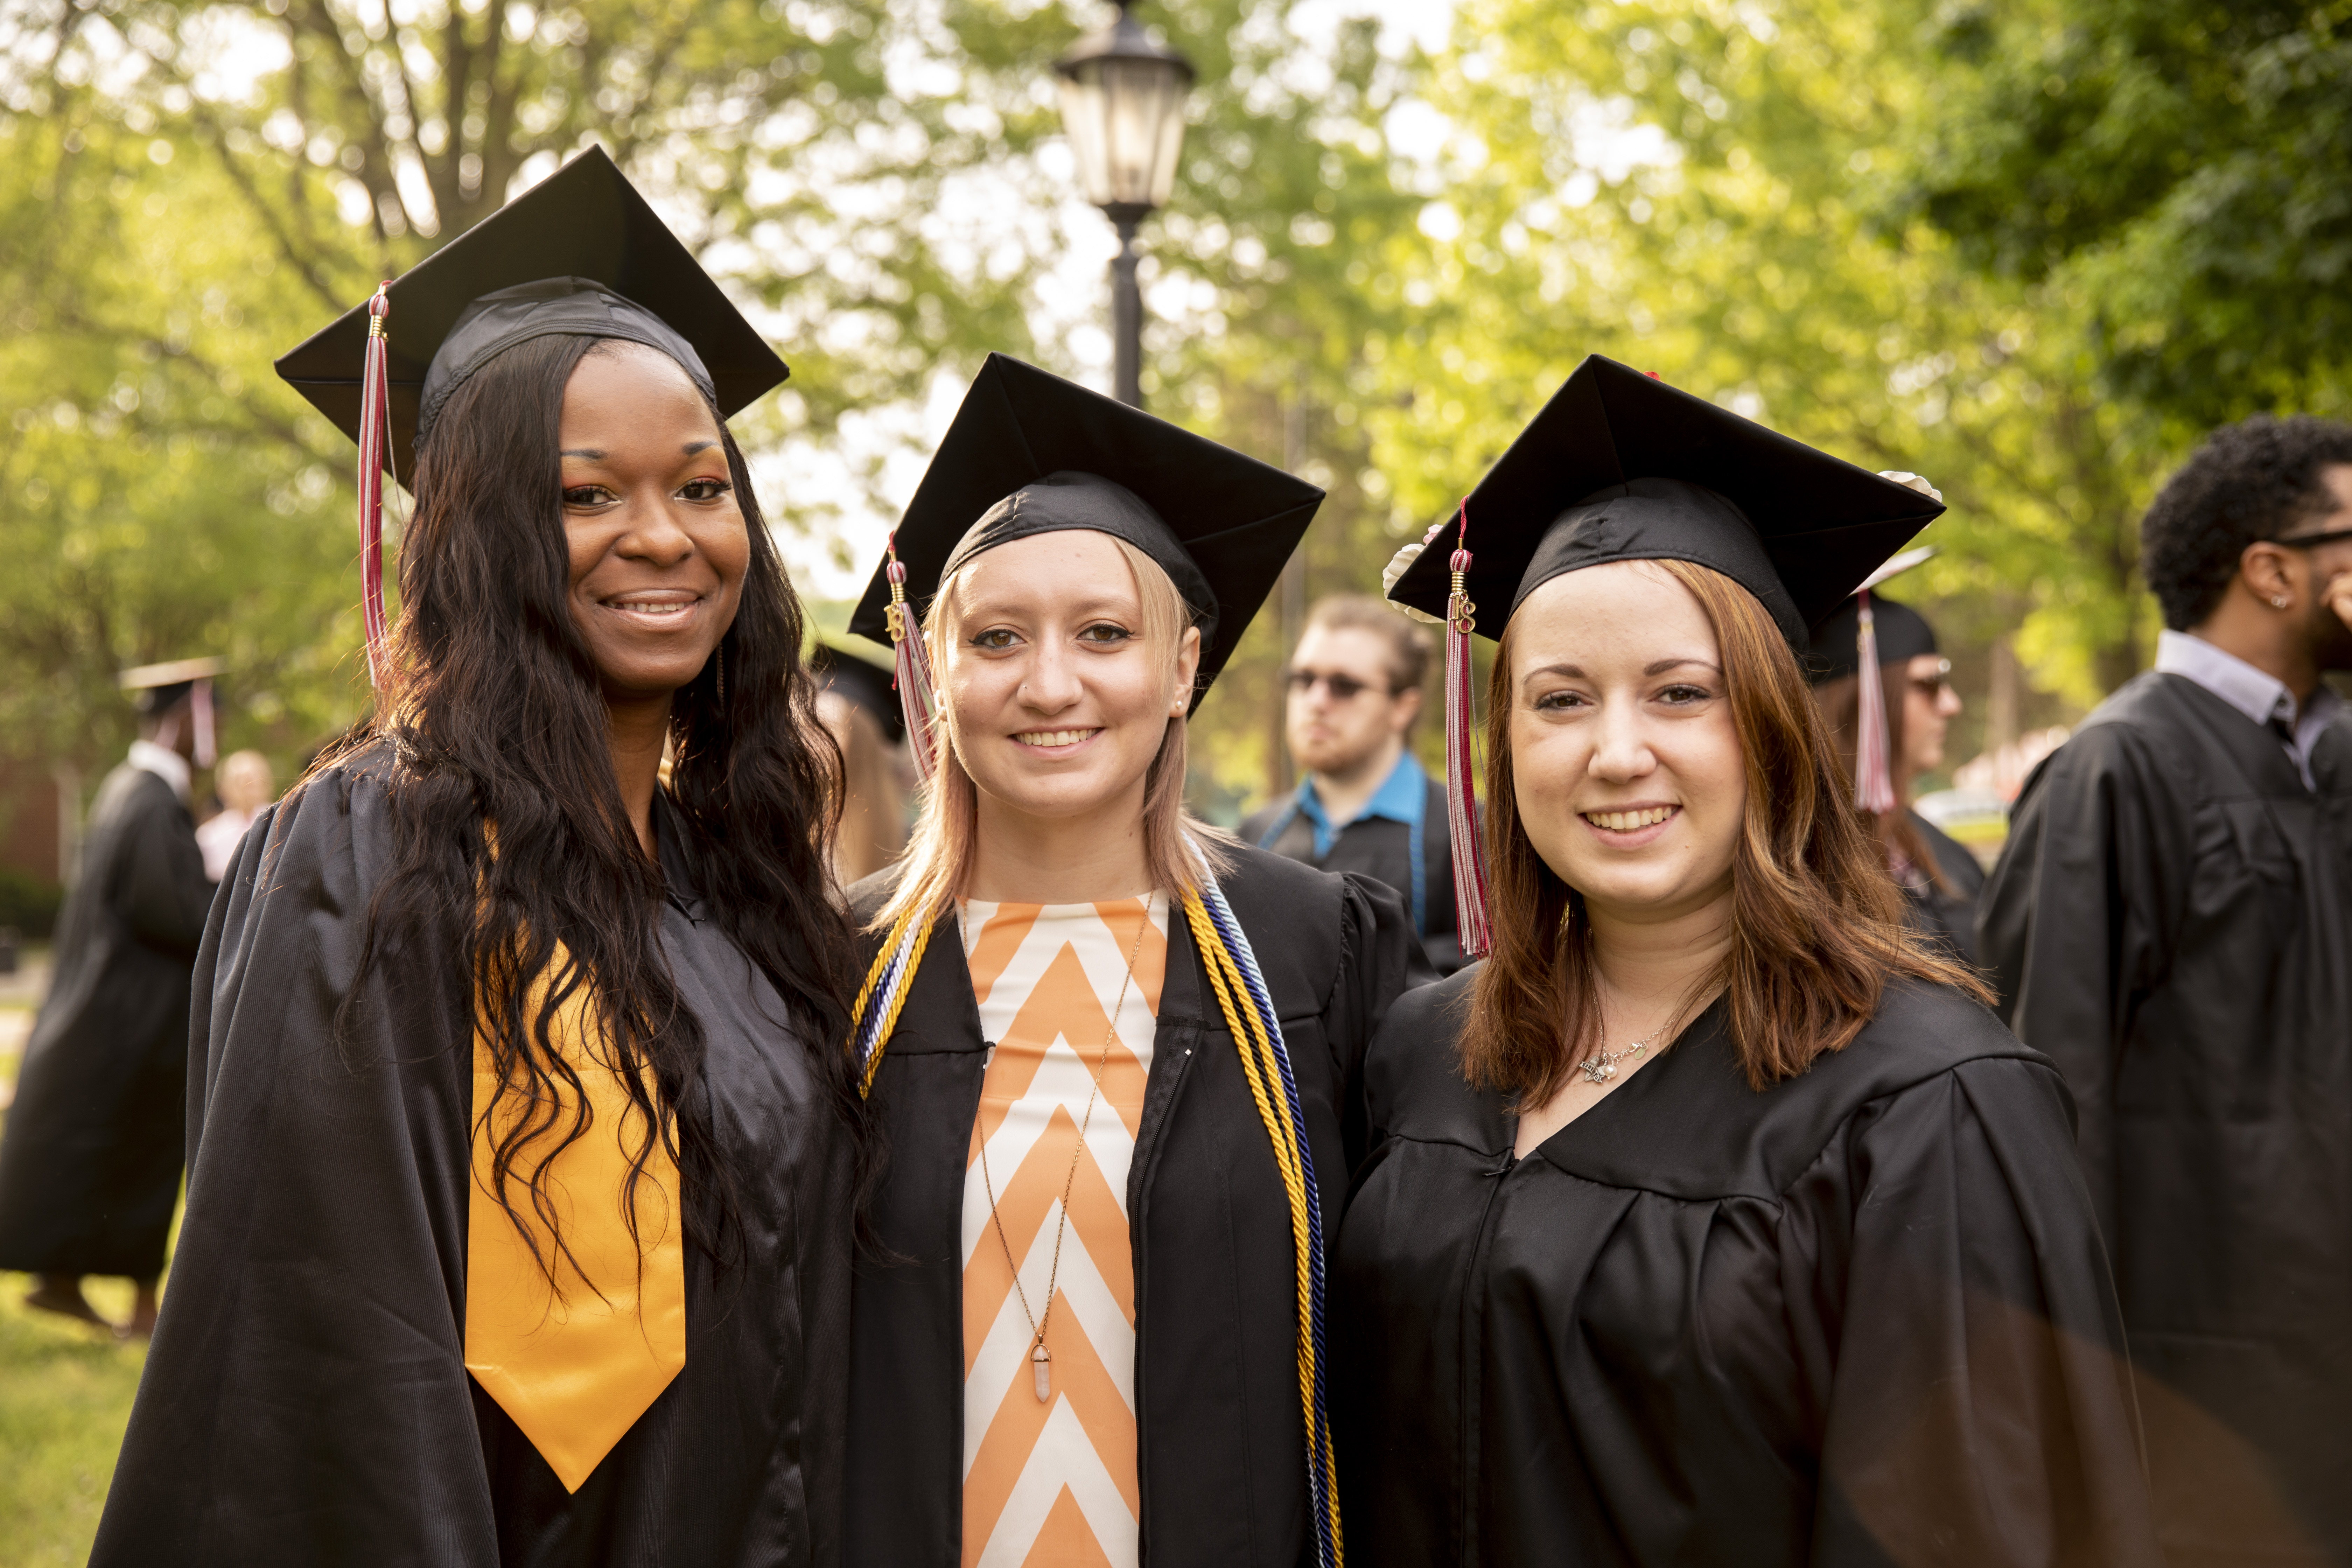 Three students take a photo together after Commencement.